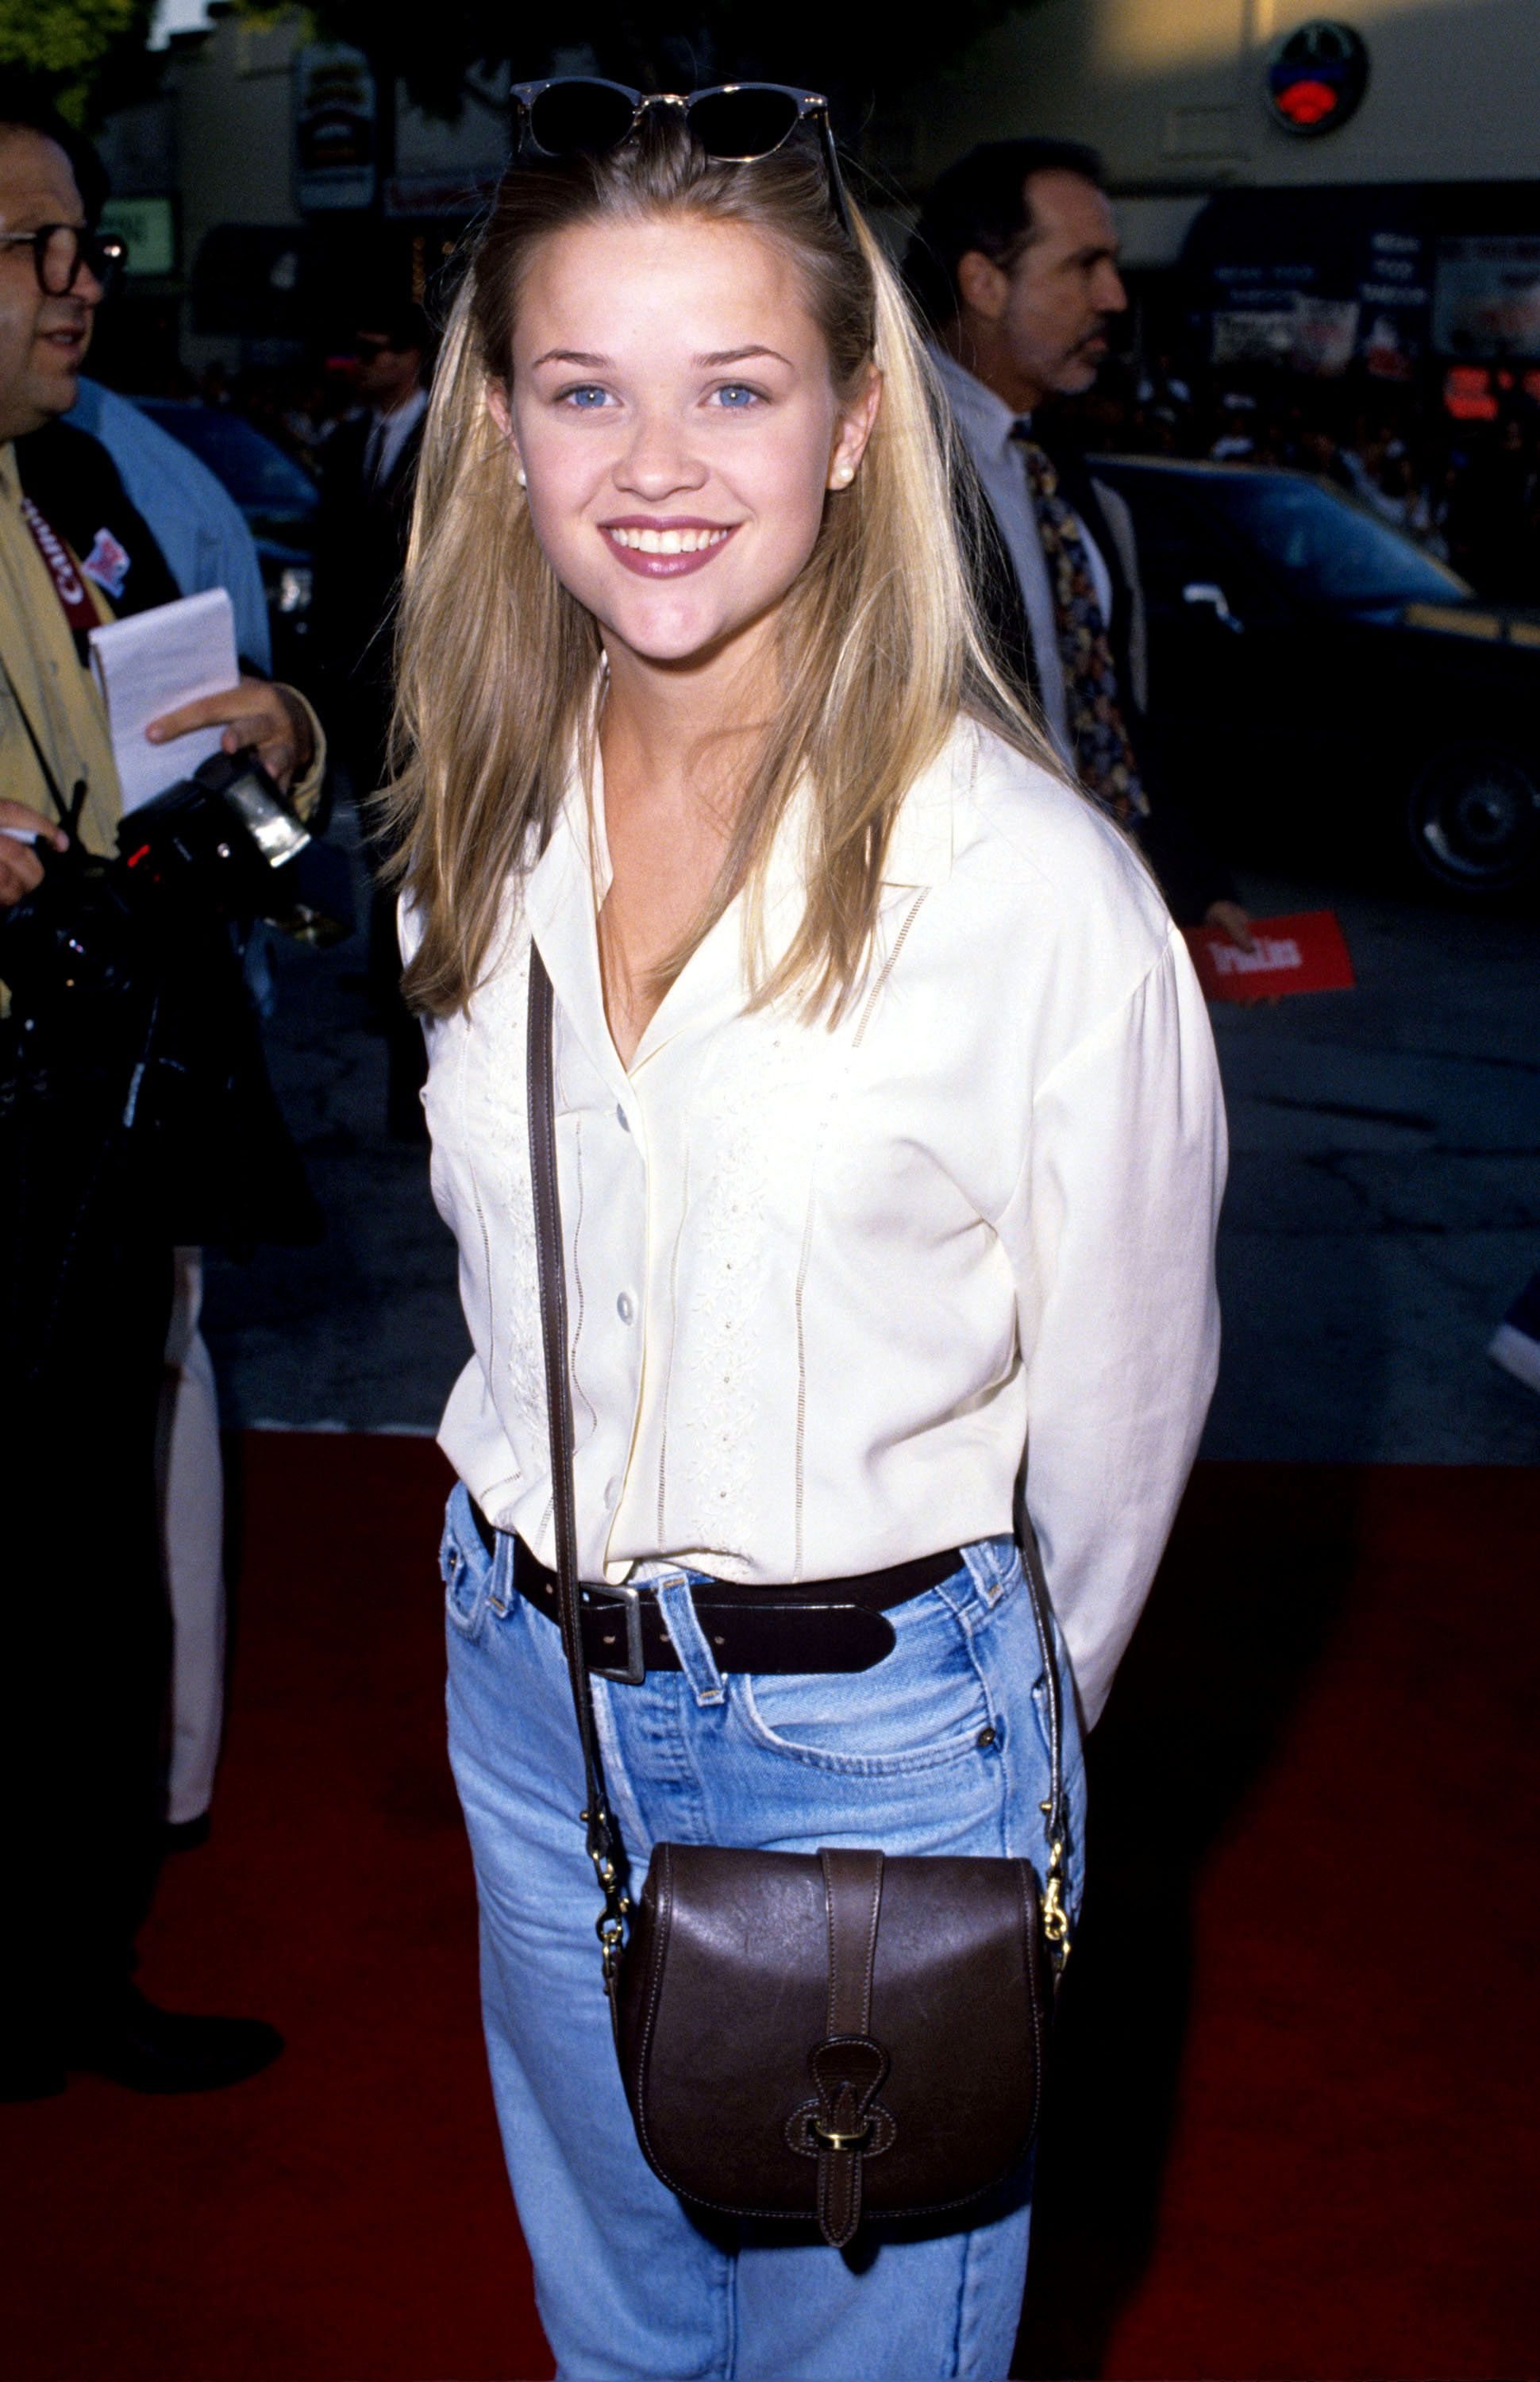 Reese Witherspoon (Photo by S. Granitz/WireImage)